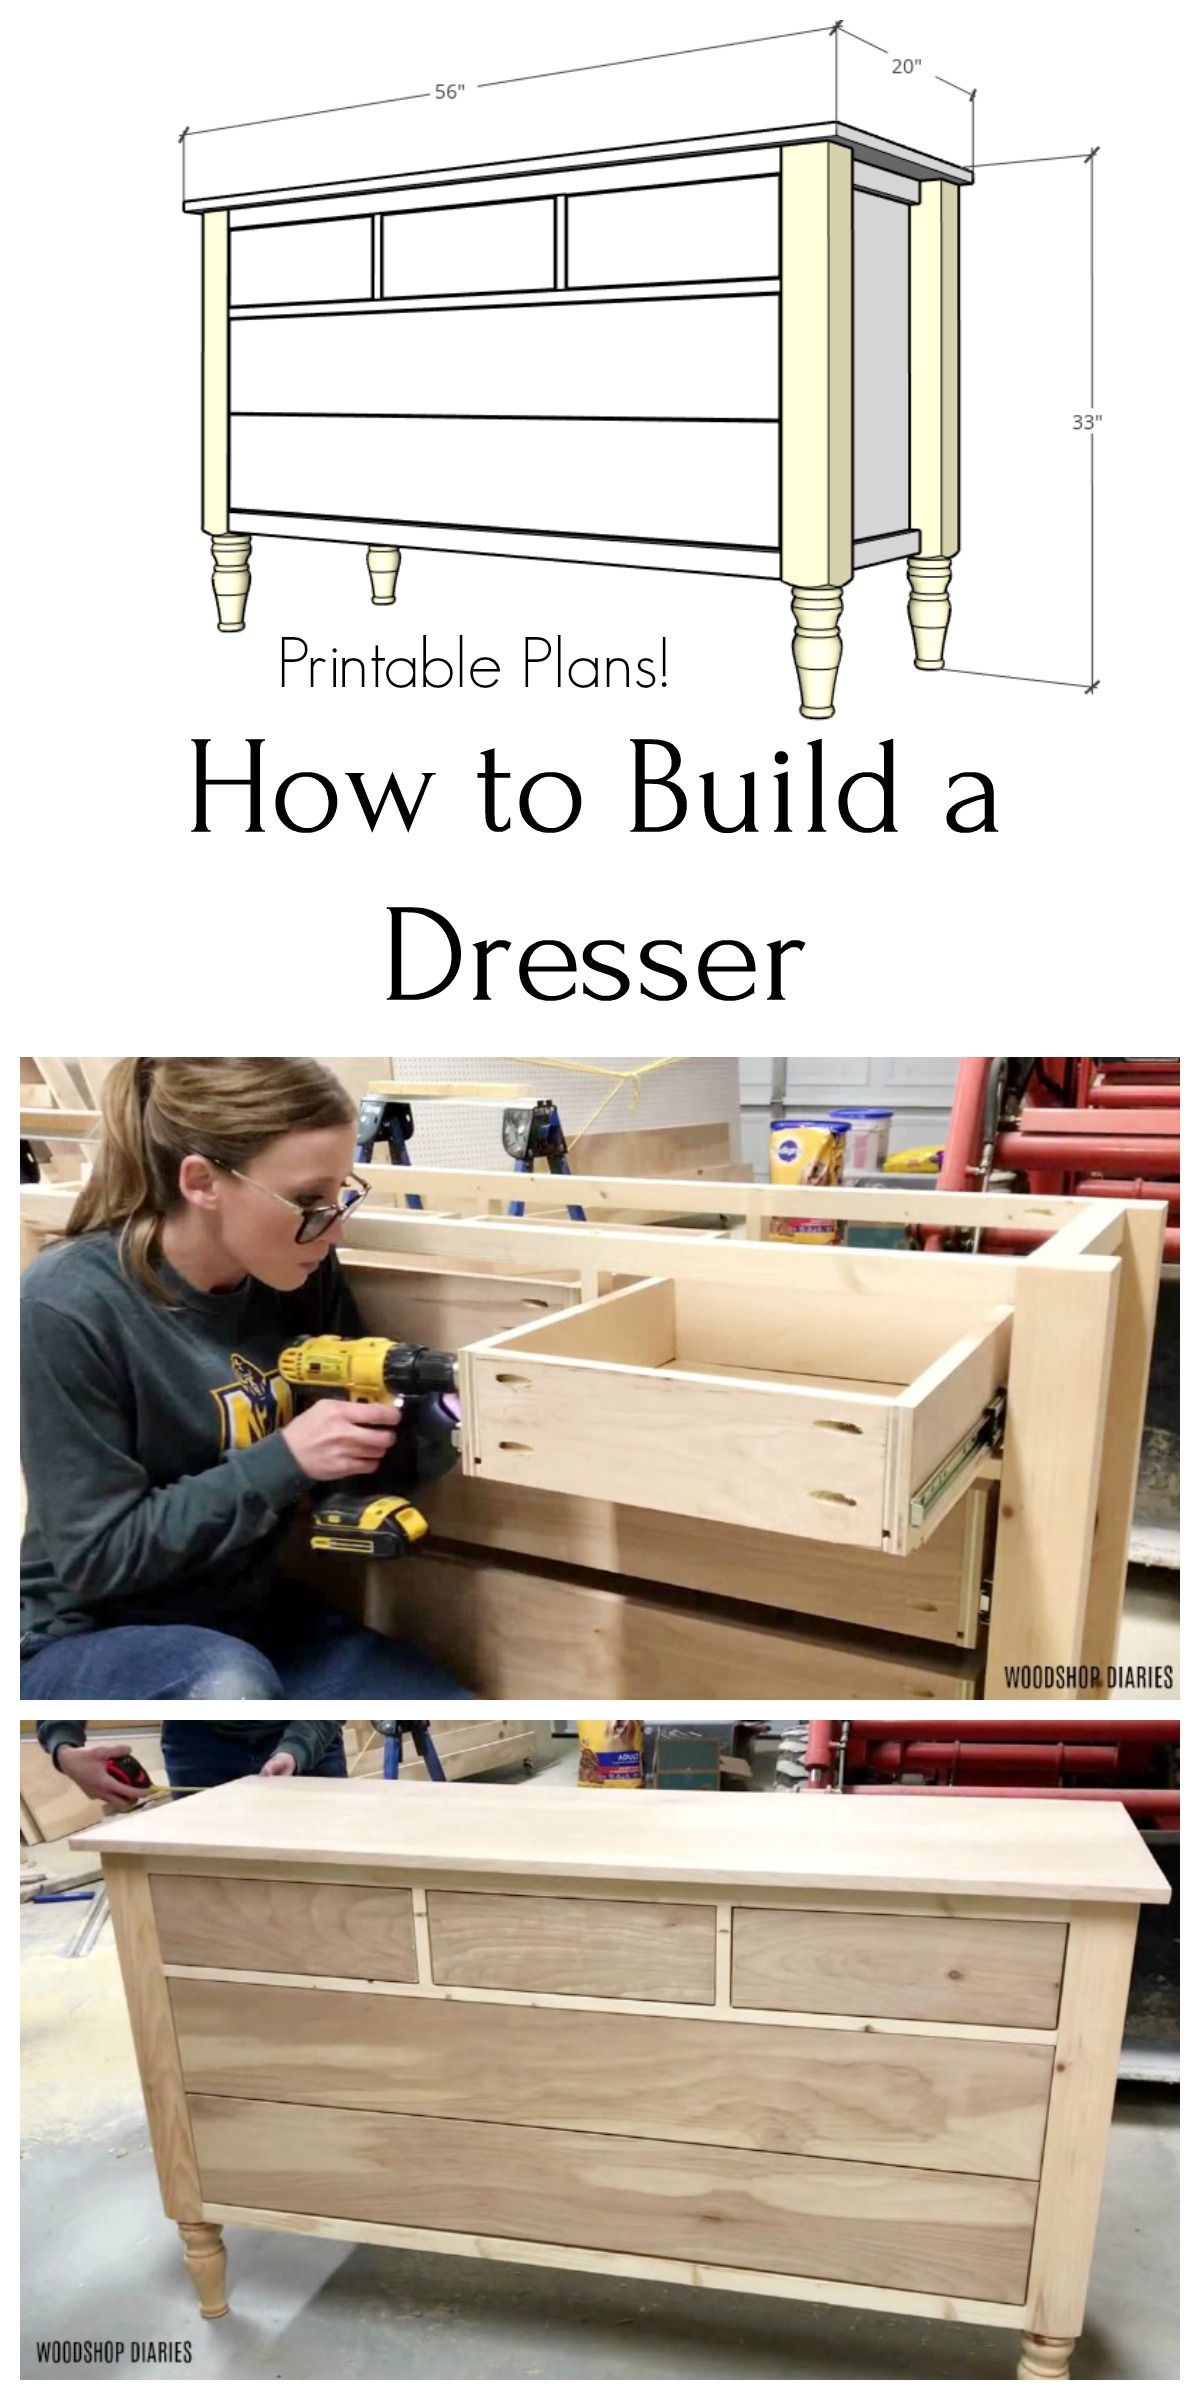 Build Your Own Diy Dresser Video And Step By Step Tutorial In 2020 Diy Dresser Build Woodworking Furniture Plans Woodworking Building Plans